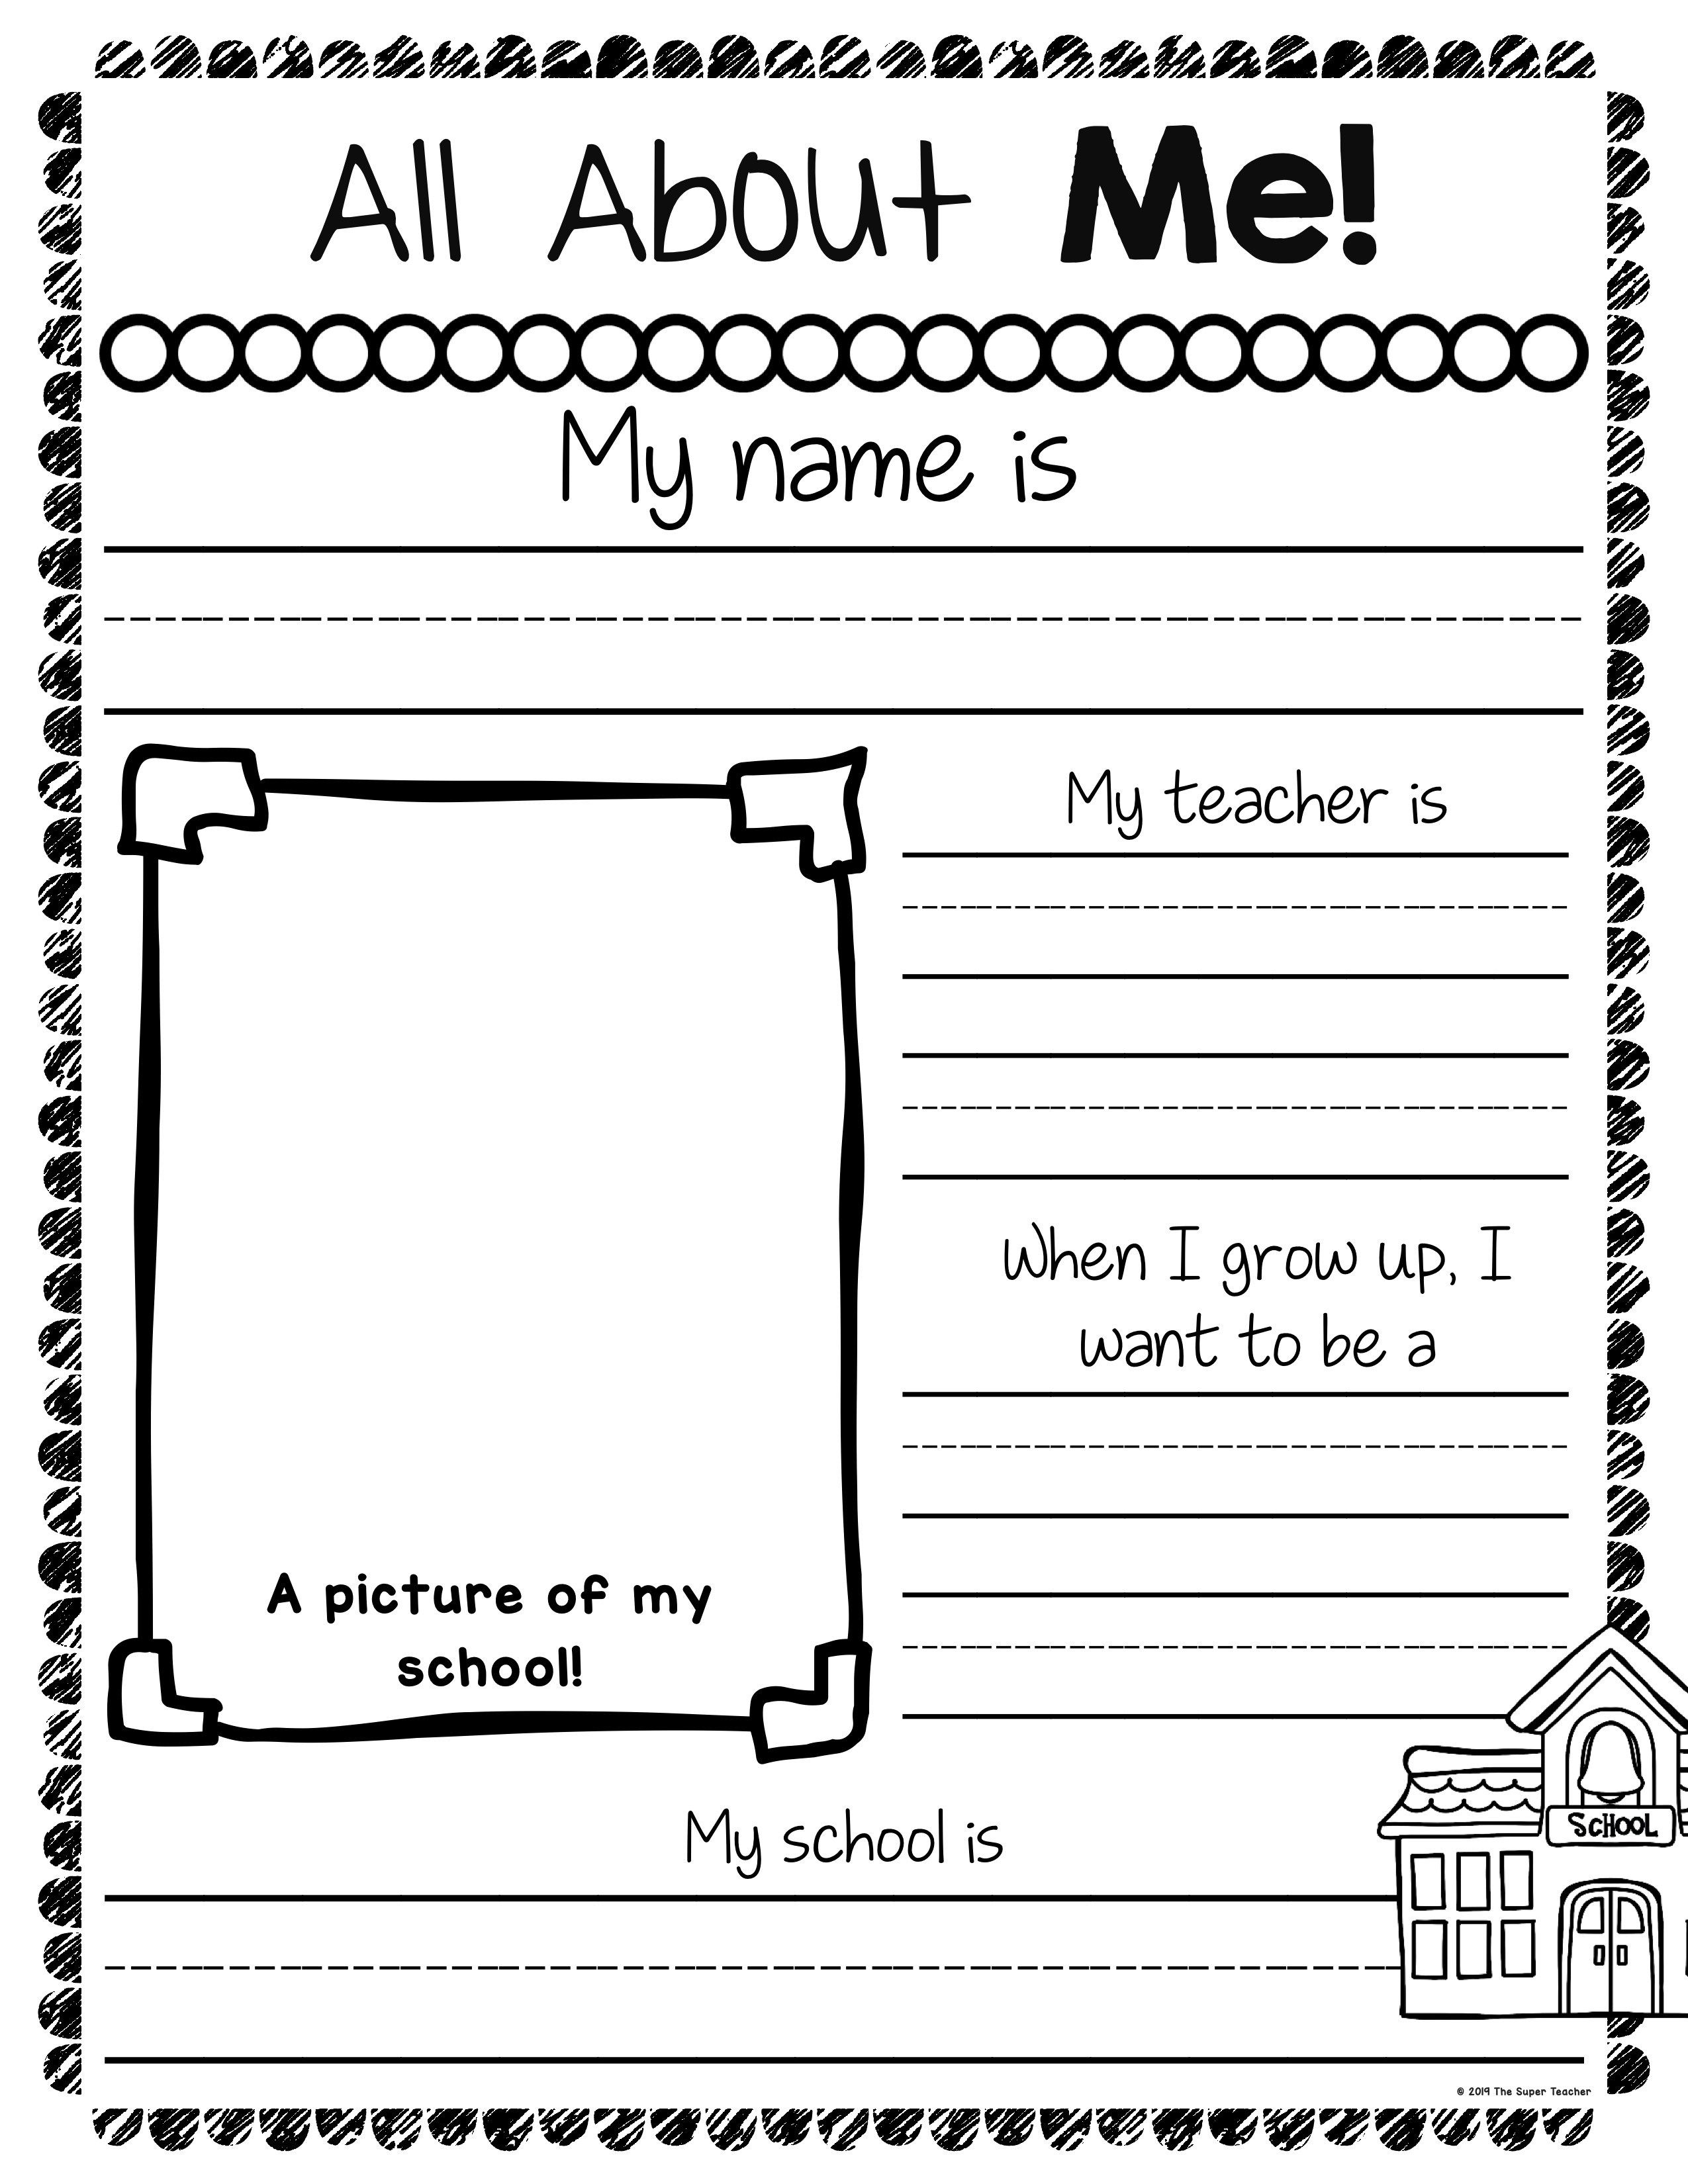 How To Easily Get Students Interested In Writing In Writing Writing Standards All About Me Book